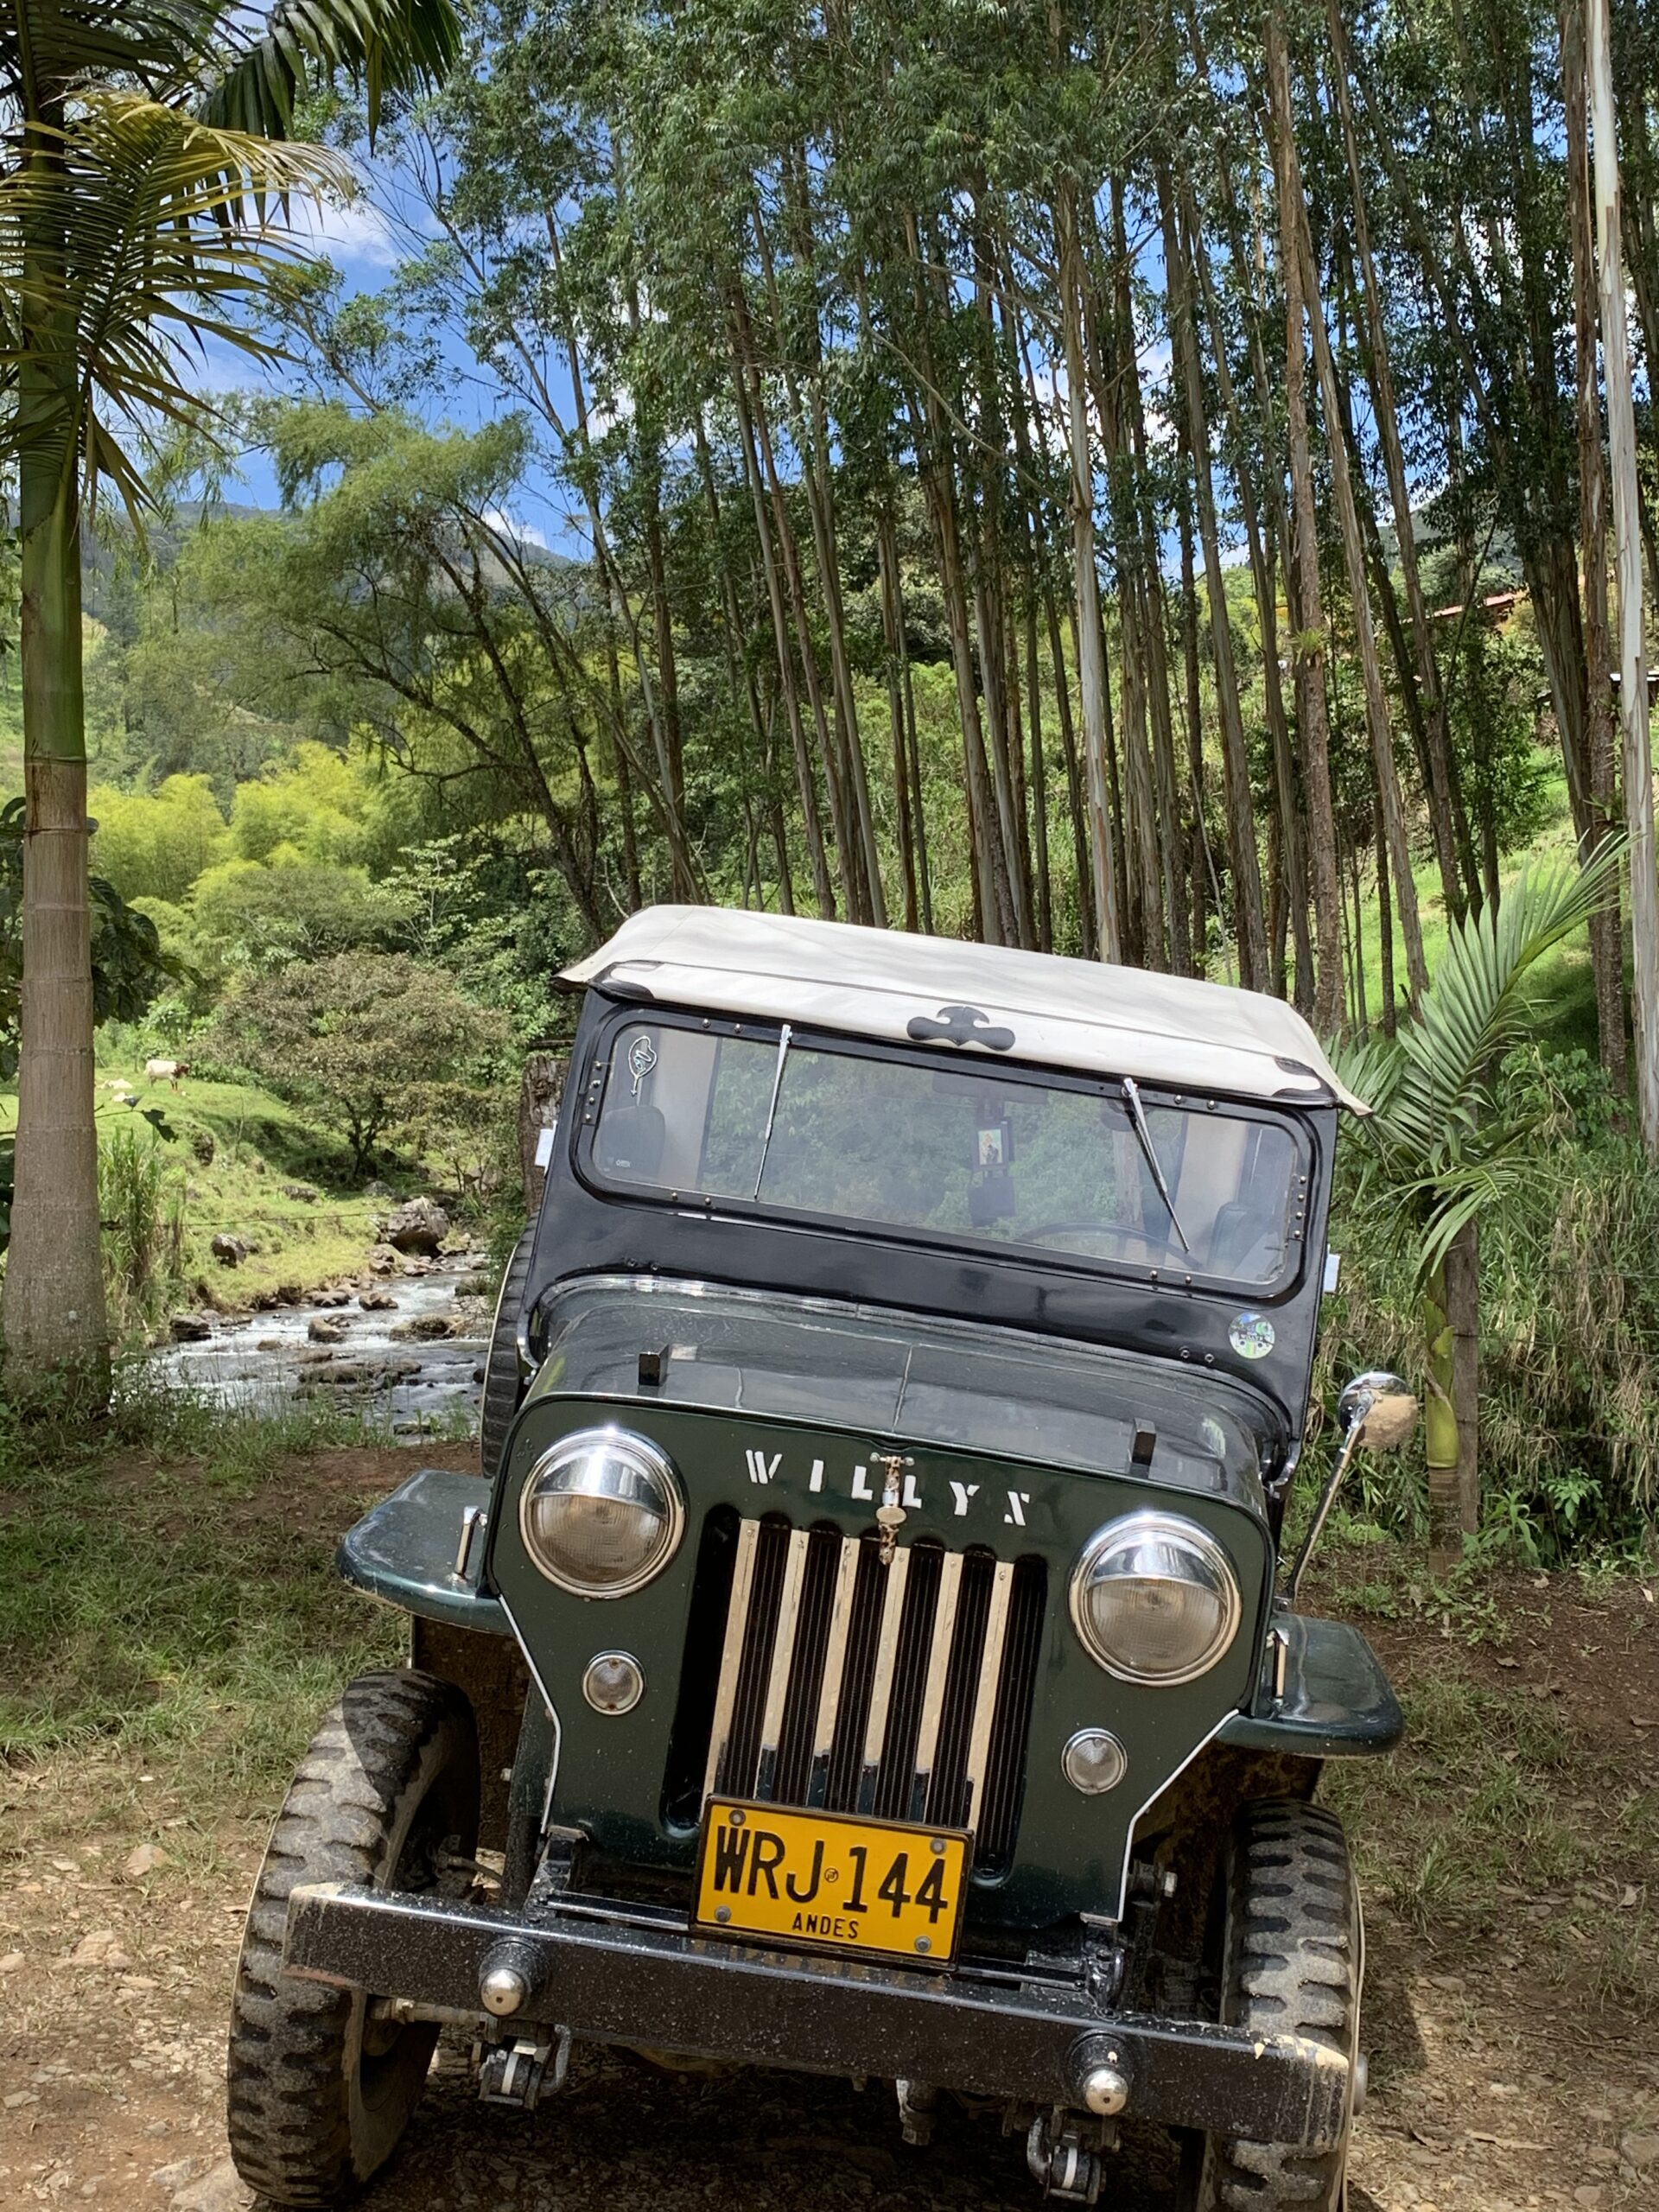 Discover Jardin in a 1954 Willys Jeep - fun adventure!